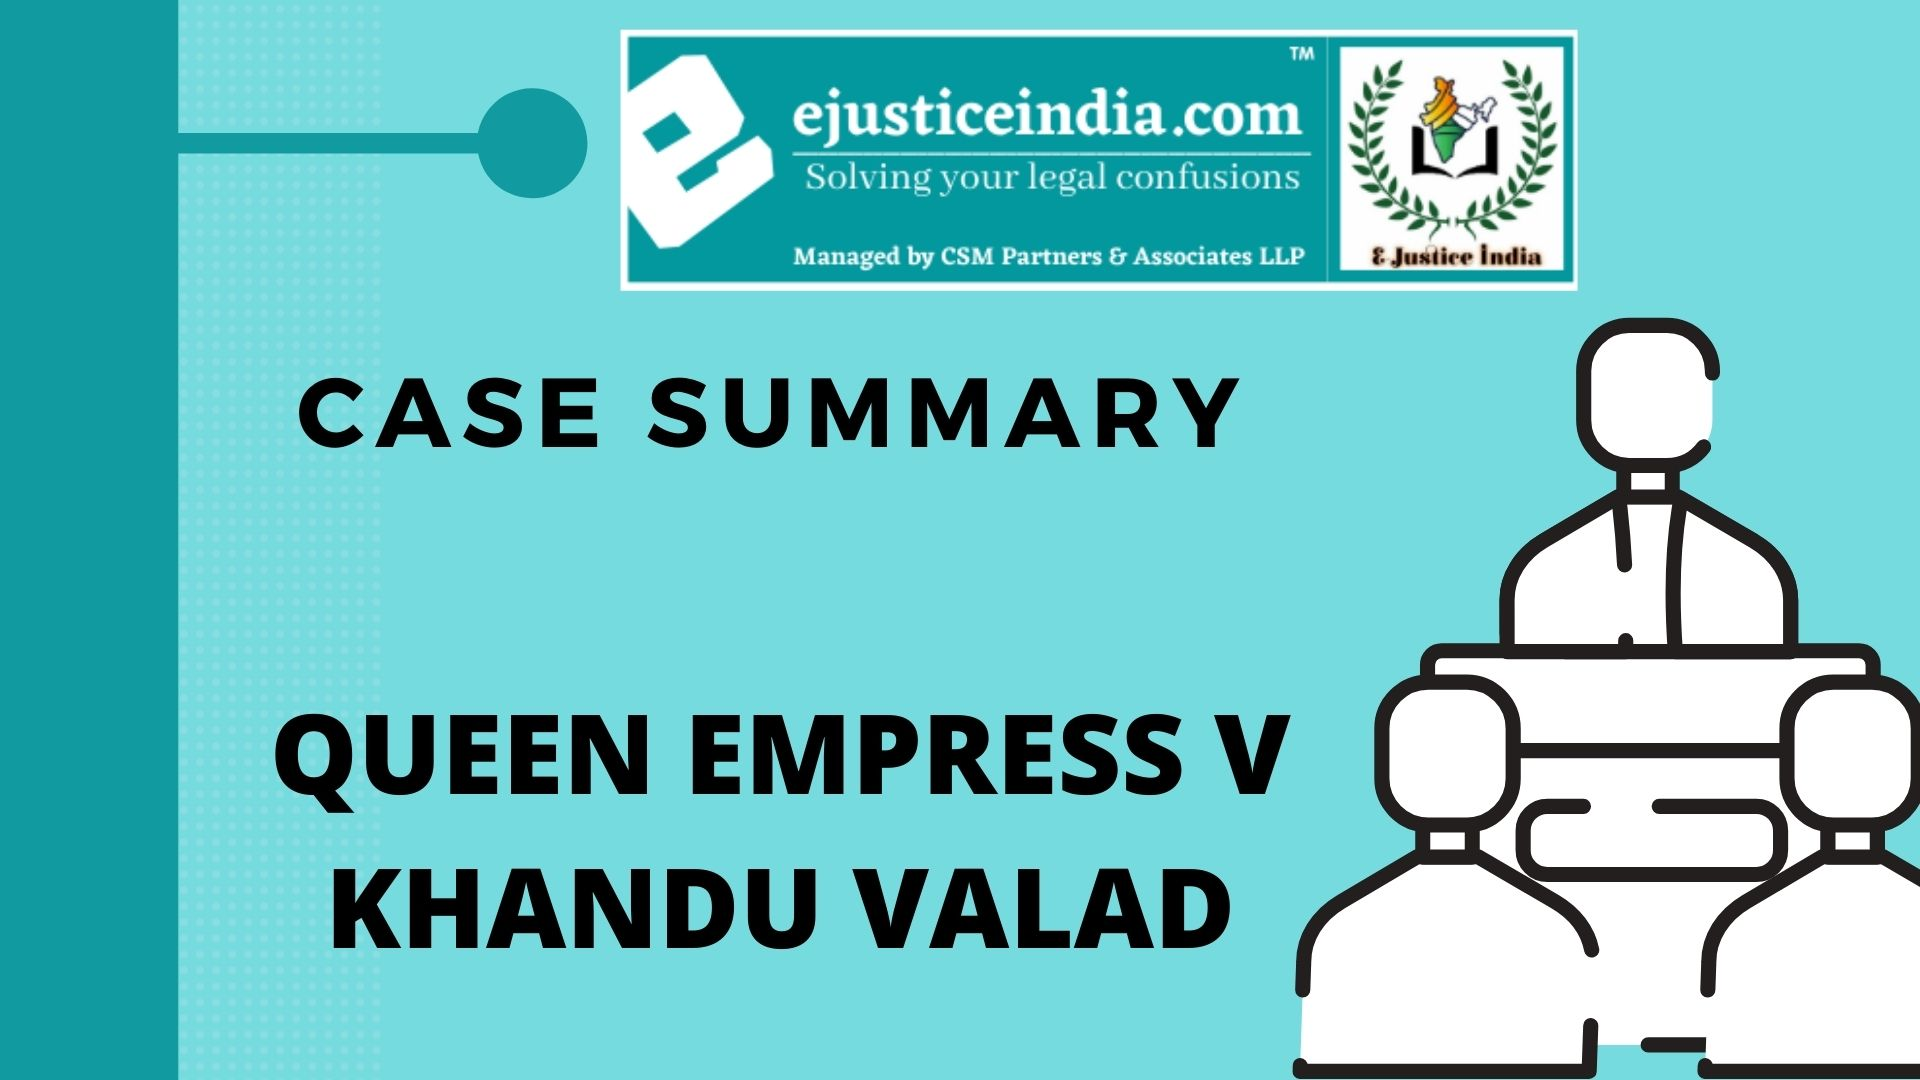 QUEEN EMPRESS V KHANDU VALAD